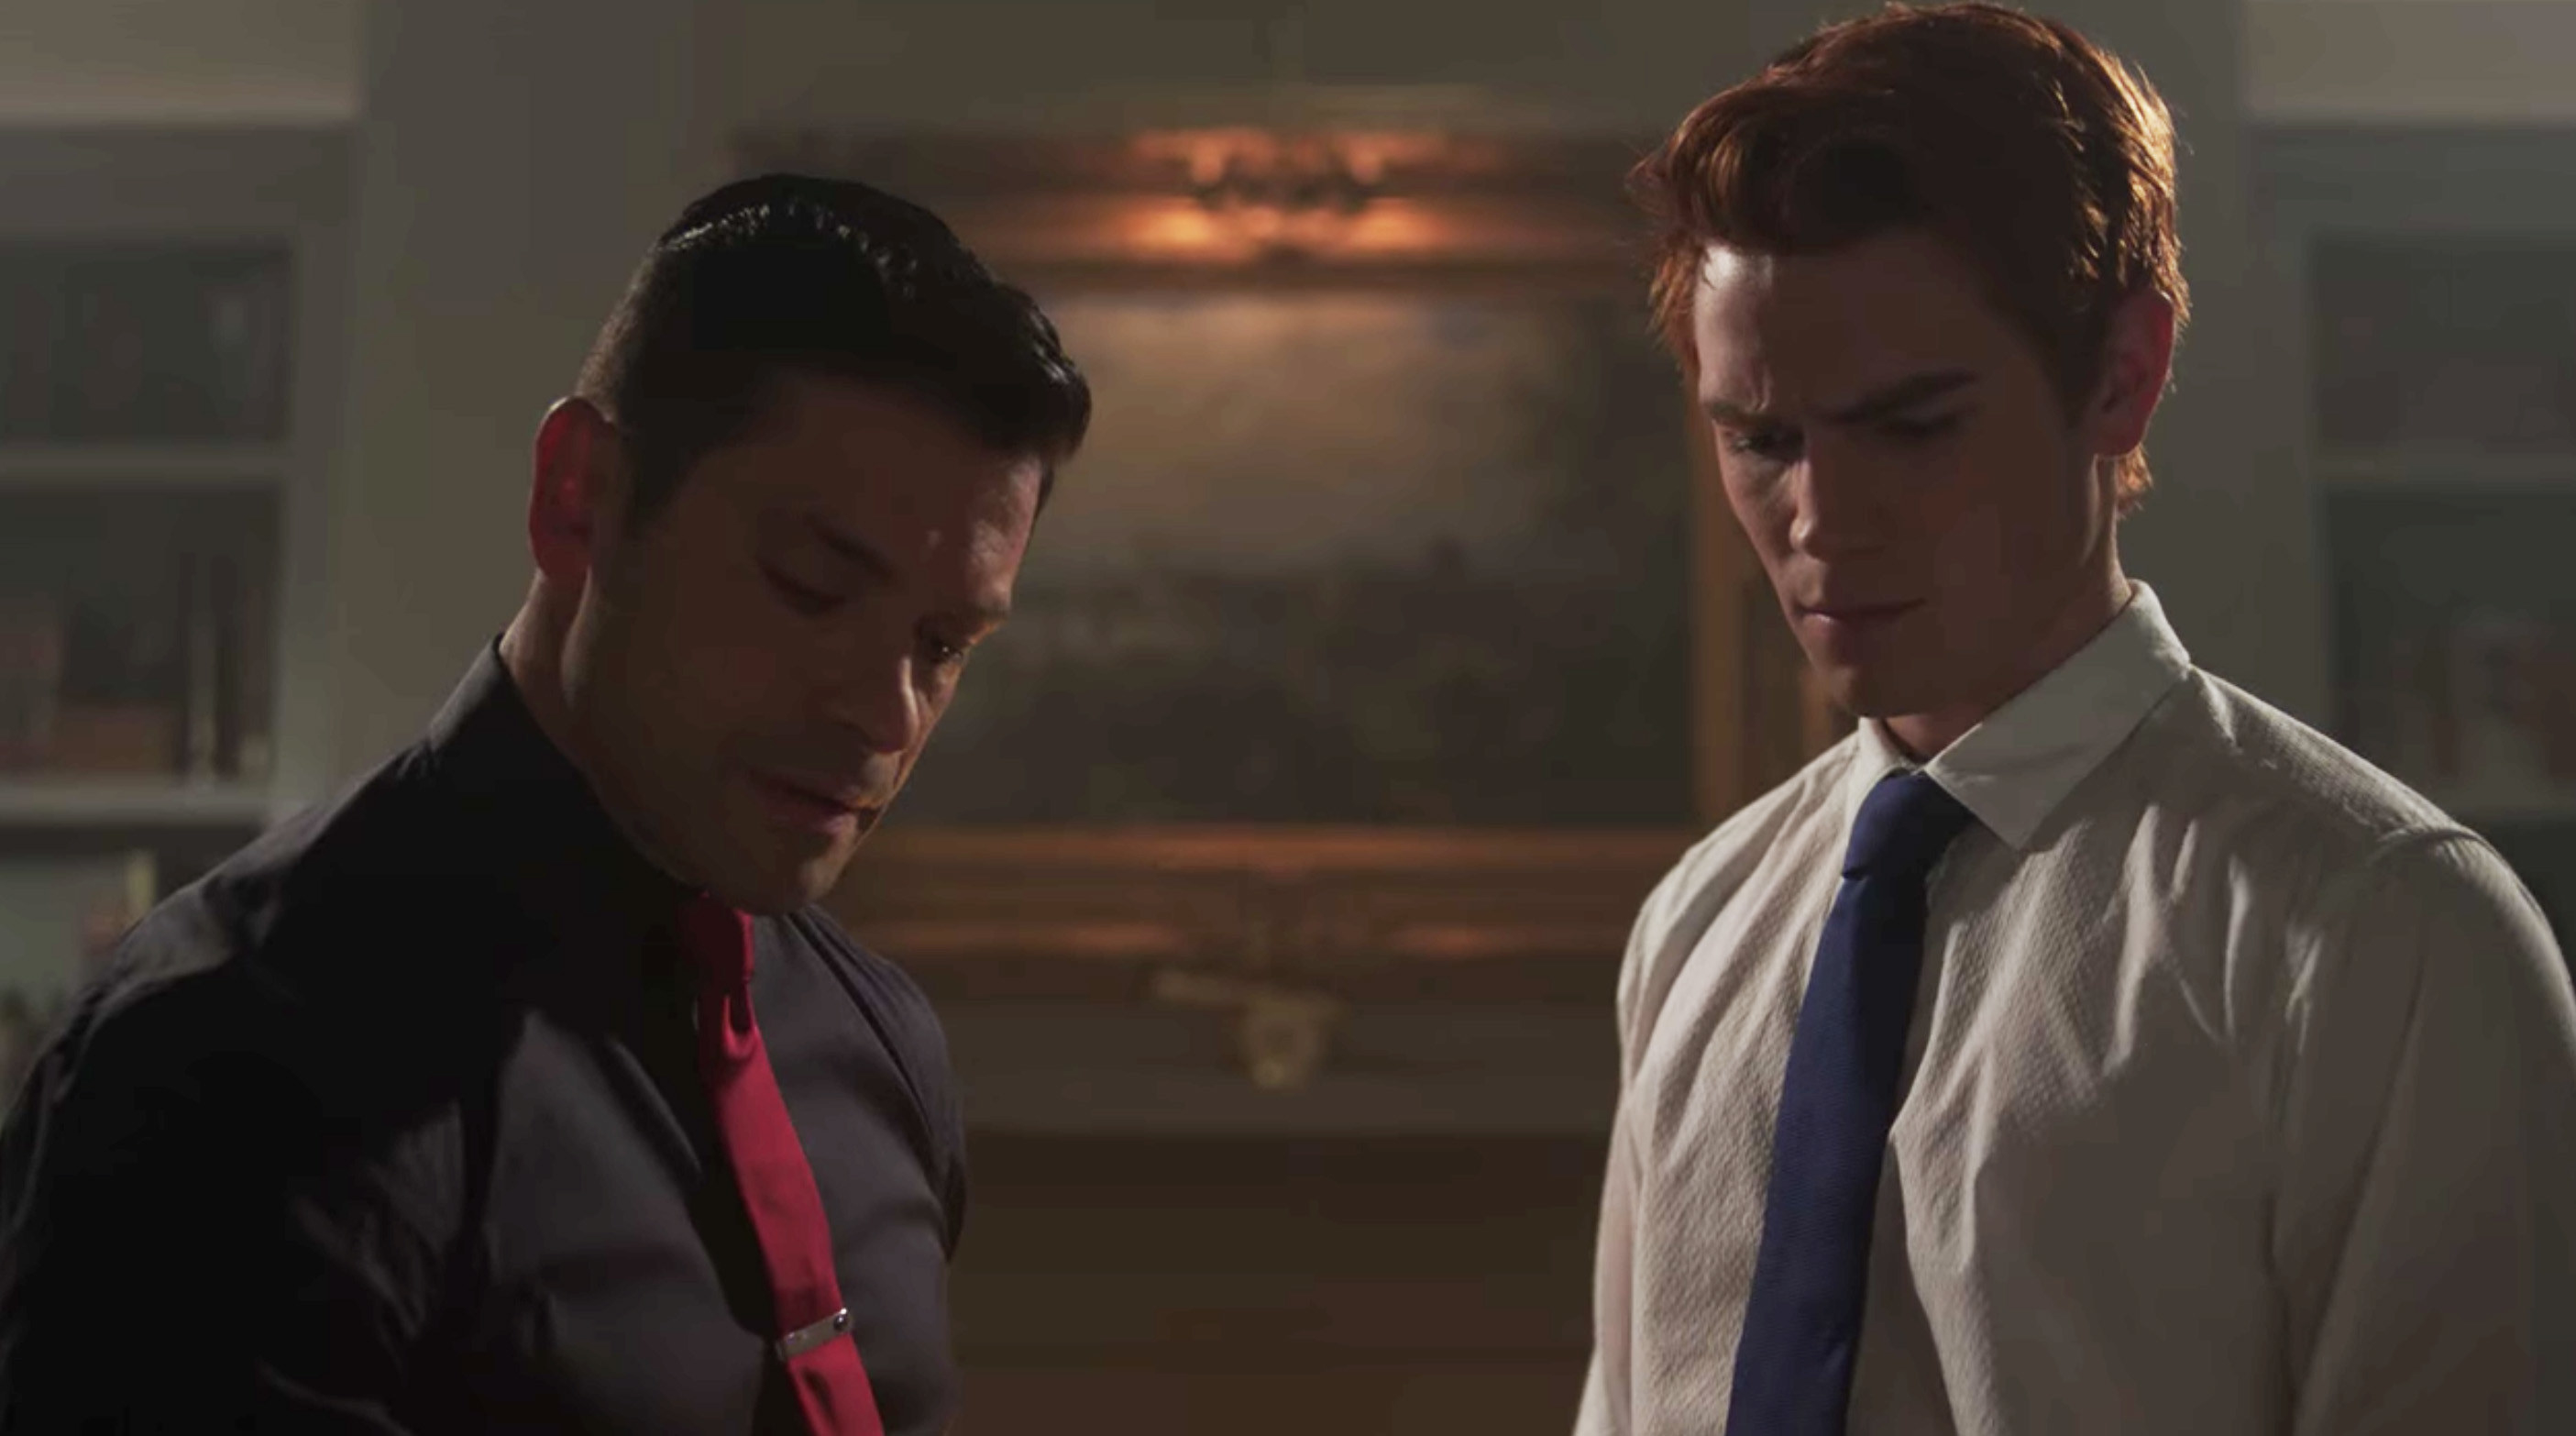 Archie and Hiram in Hiram's study